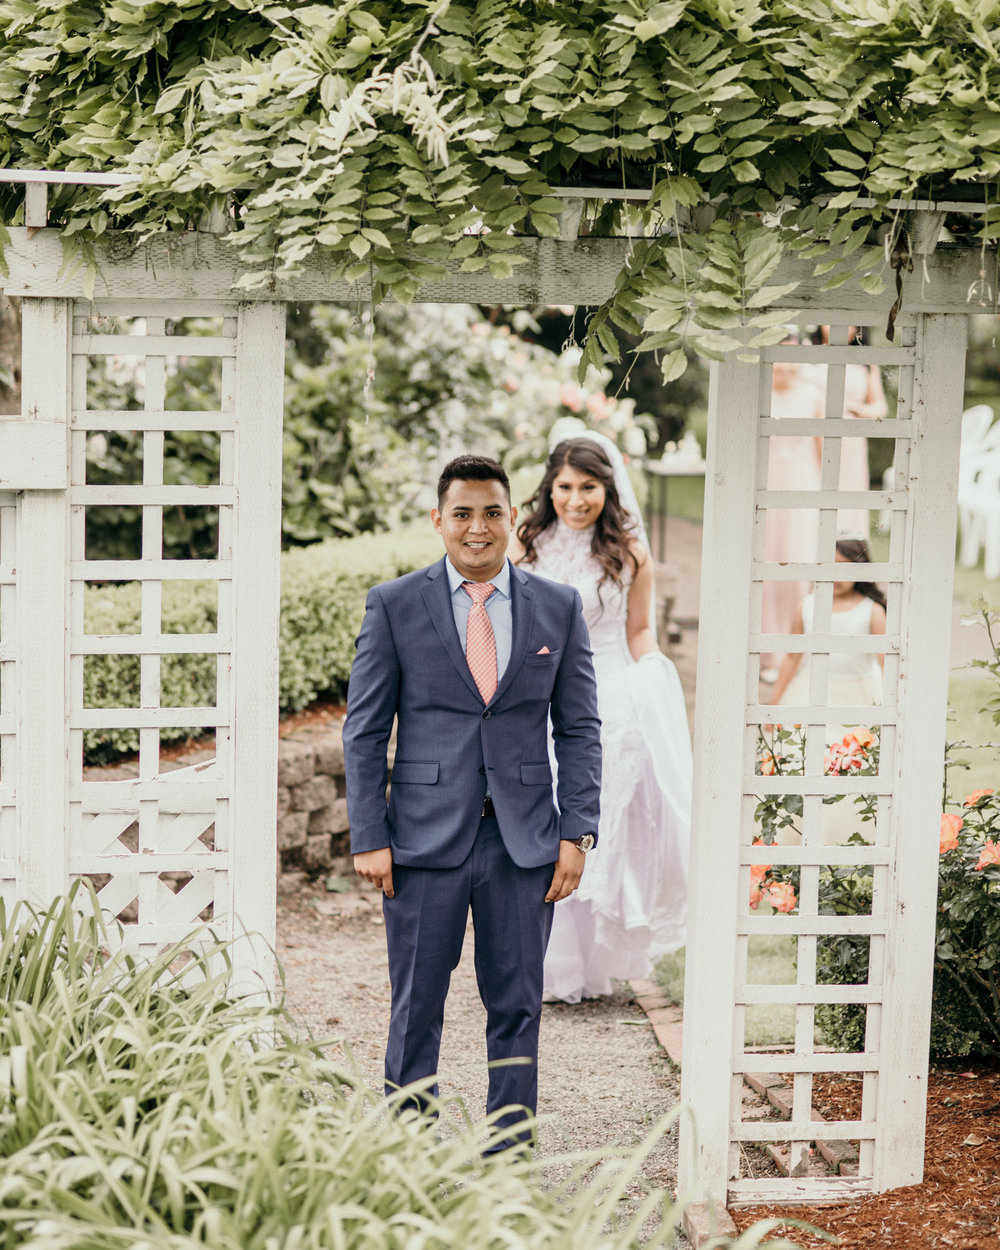 009 Spring Wedding_Garden Wedding_Montana Wedding_Missoula Wedding Photographer_Bozeman Wedding Photographer_Montana Wedding Photographer_Kelsey Lane Photography_Yoselin + Daniel Wedding-2-309.jpg